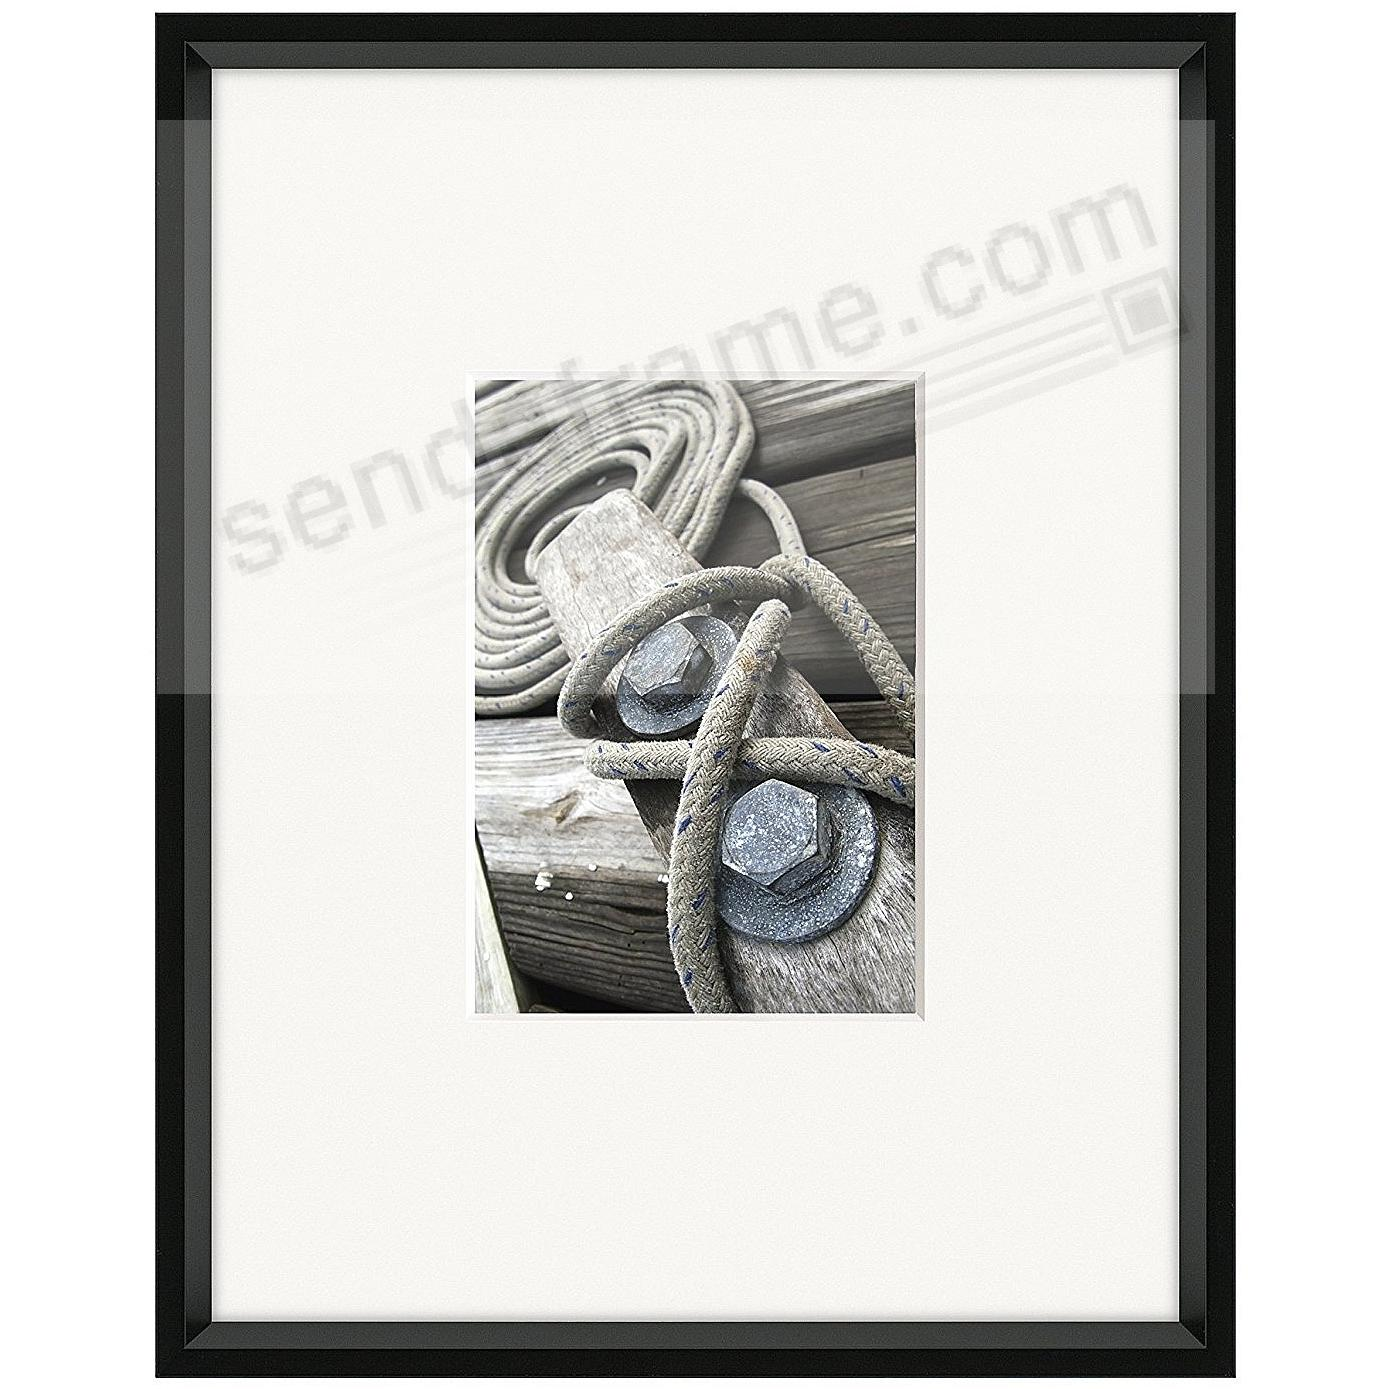 GALLERY matted Matte-Black metallic frame 11x14/5x7 from ARTCARE® by ...